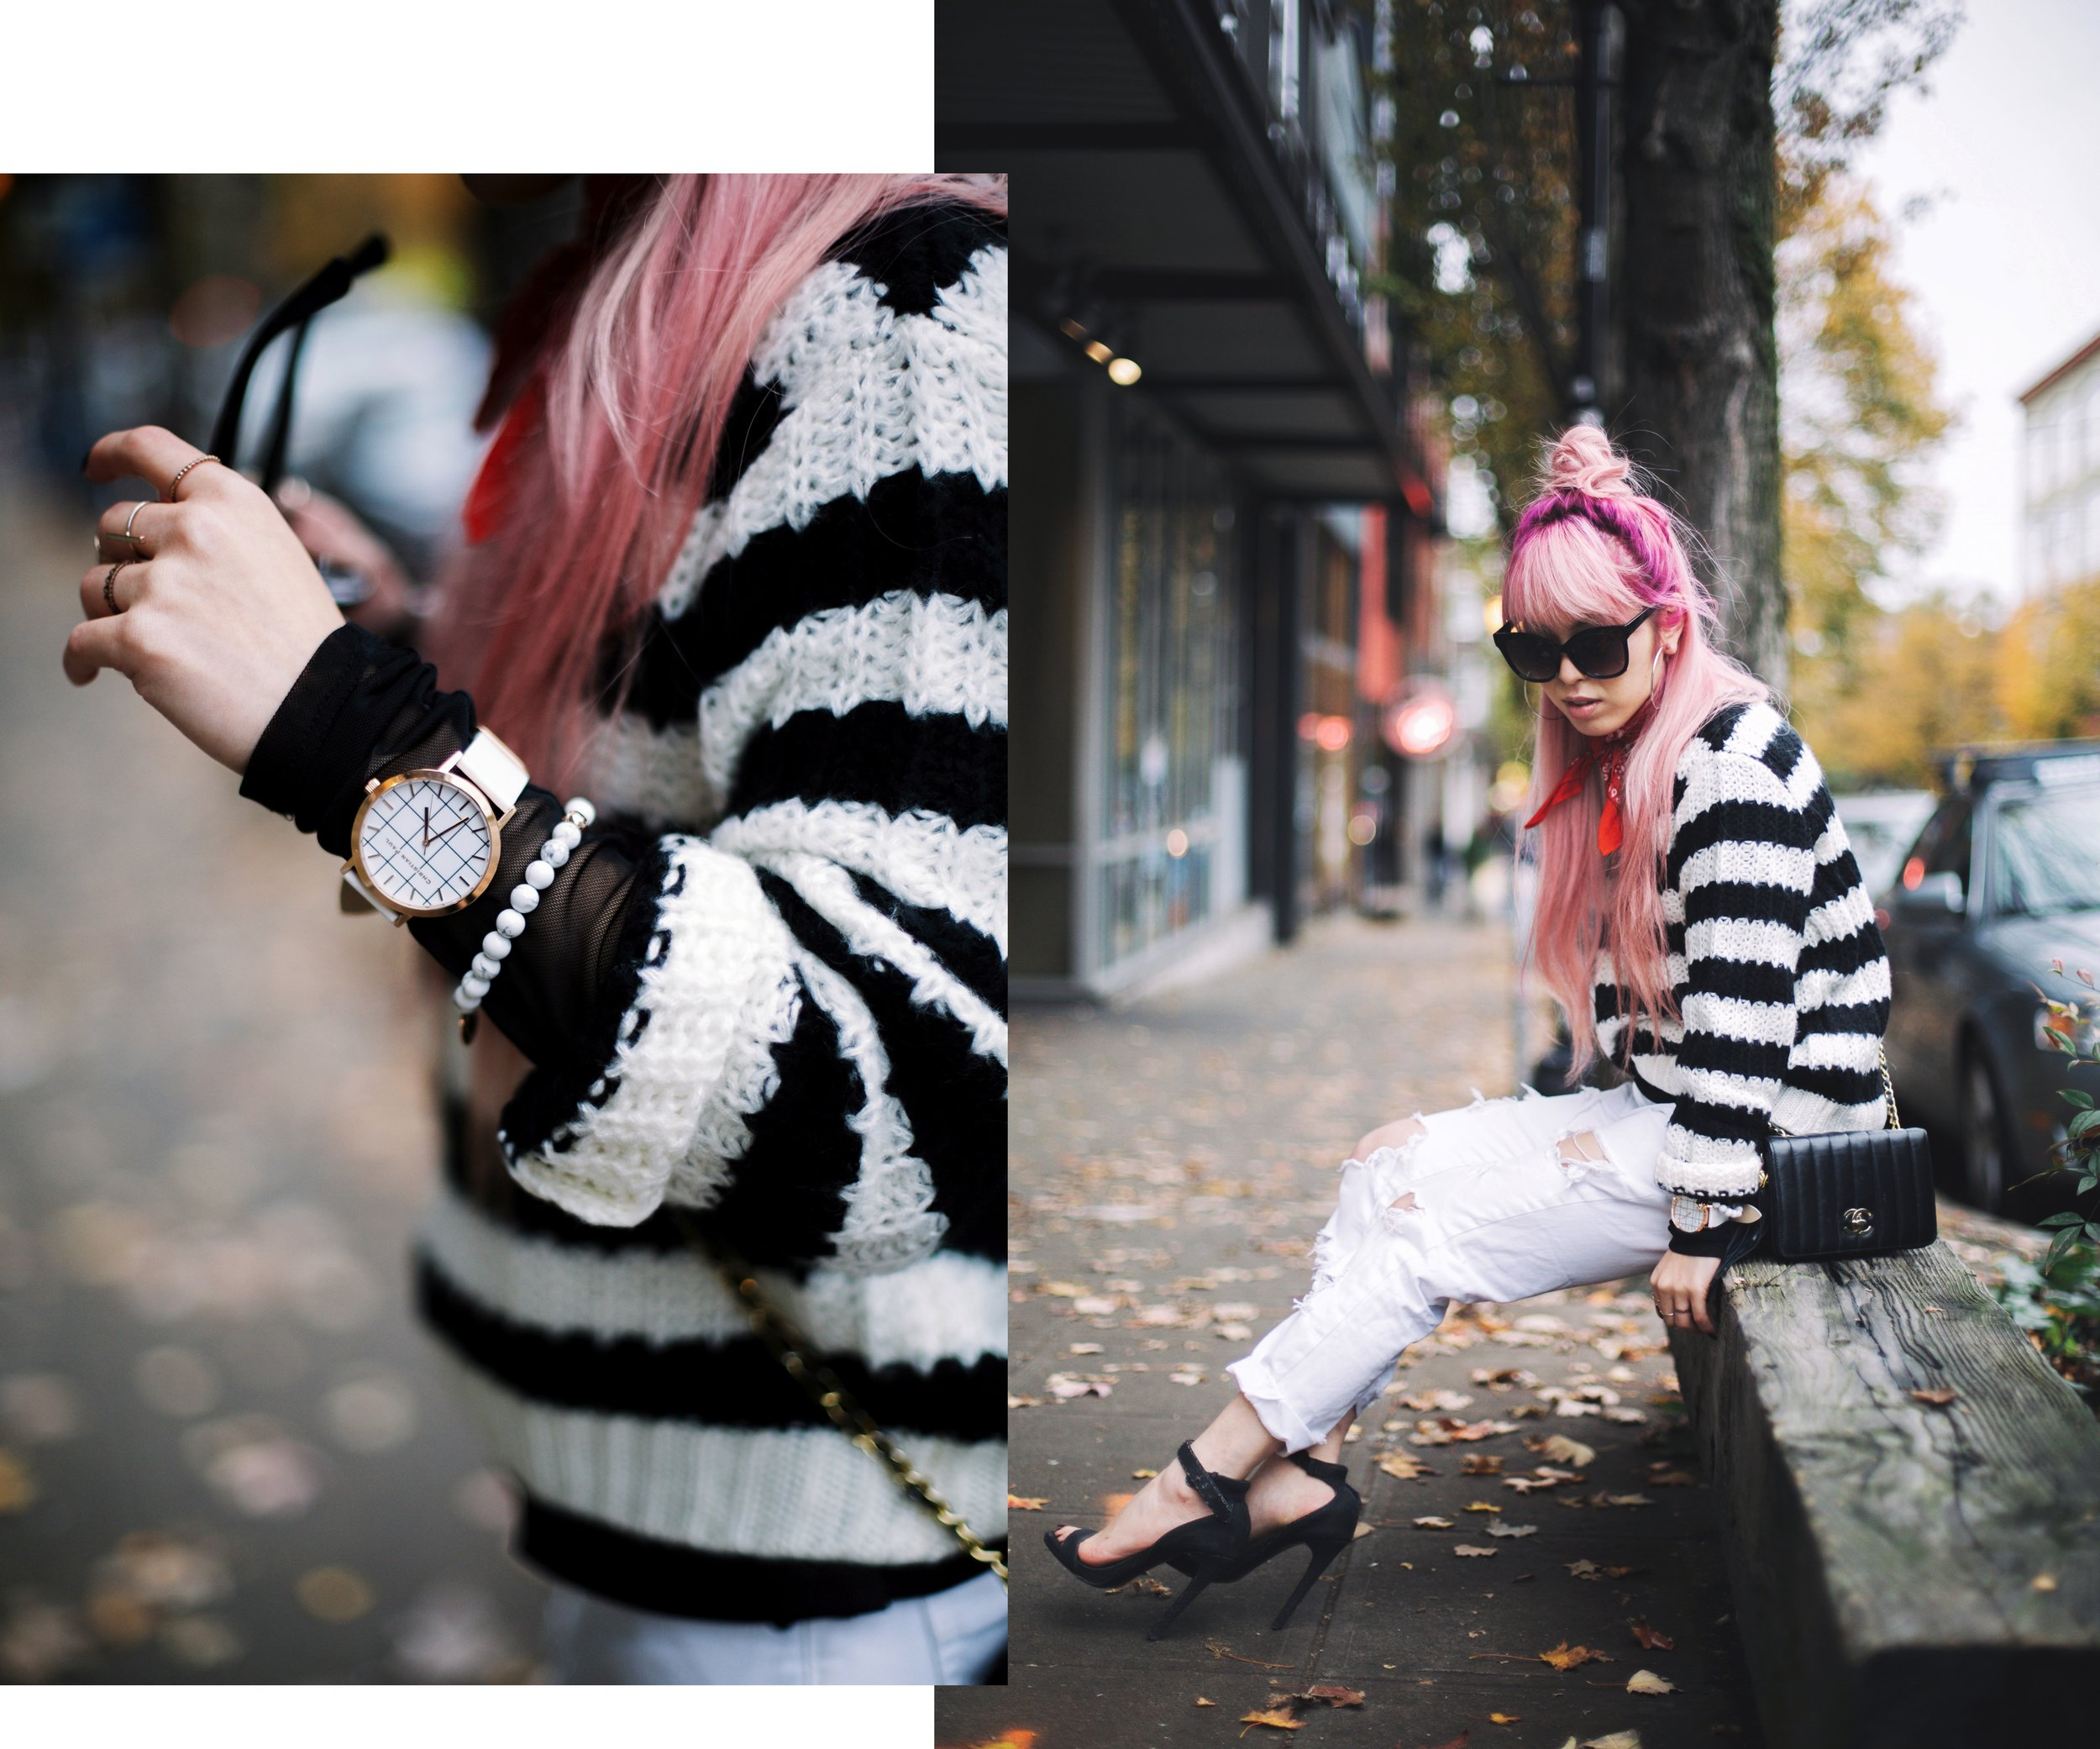 Urban Outfitters Sunglasses & Red bandana-Who What Wear Striped Crew Sweater-Target-Zara Distressed white boyfriend Jeans & Black Sheer Top-Vintage Chanel Crossbody Bag-ASOS Ankle Strap Sandals-Christian Paul Grid White Watch-Aika's Love Closet-Seattle Fashion Blogger-Japanese-Pink Hair-Half Top Knot Hair 5